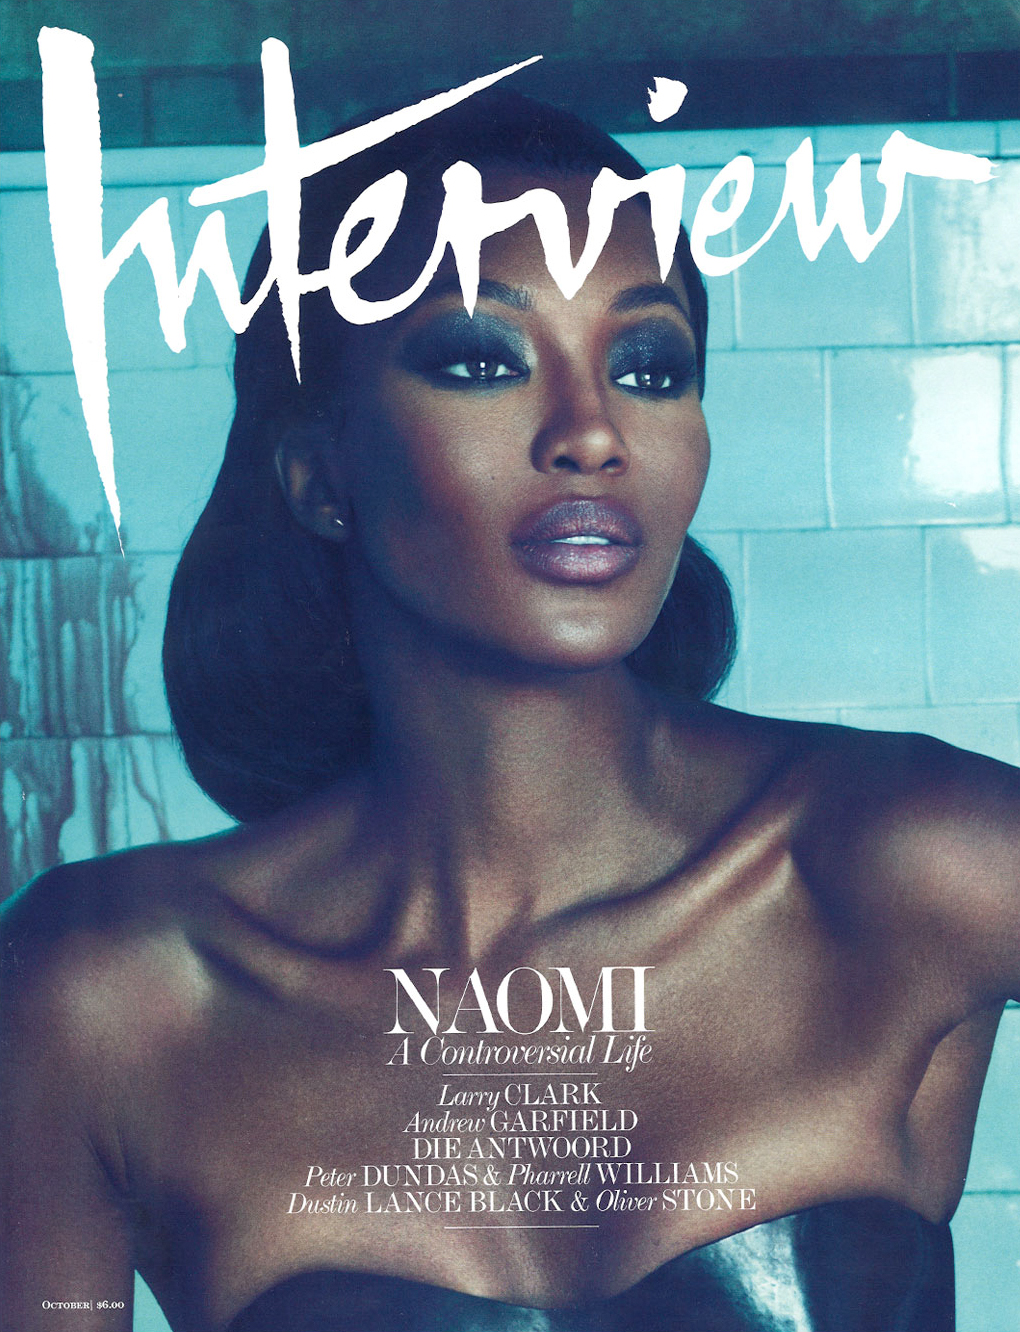 interview-october-2010-naomi-campbell-by-mert-marcus